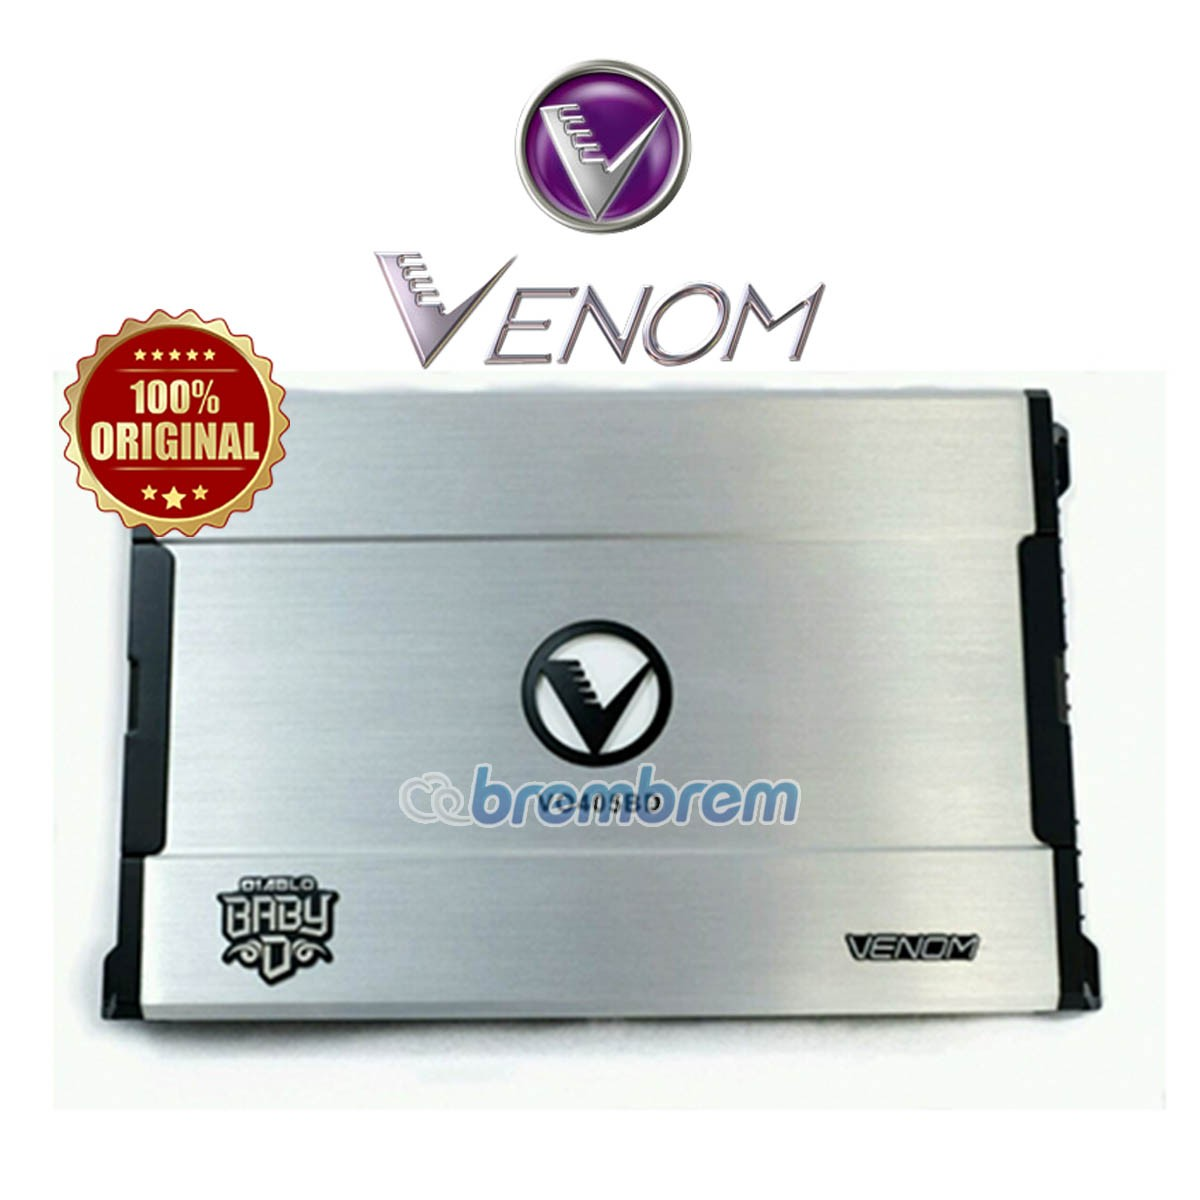 VENOM BABY DIABLO VO 405BD - POWER 4 CHANNEL